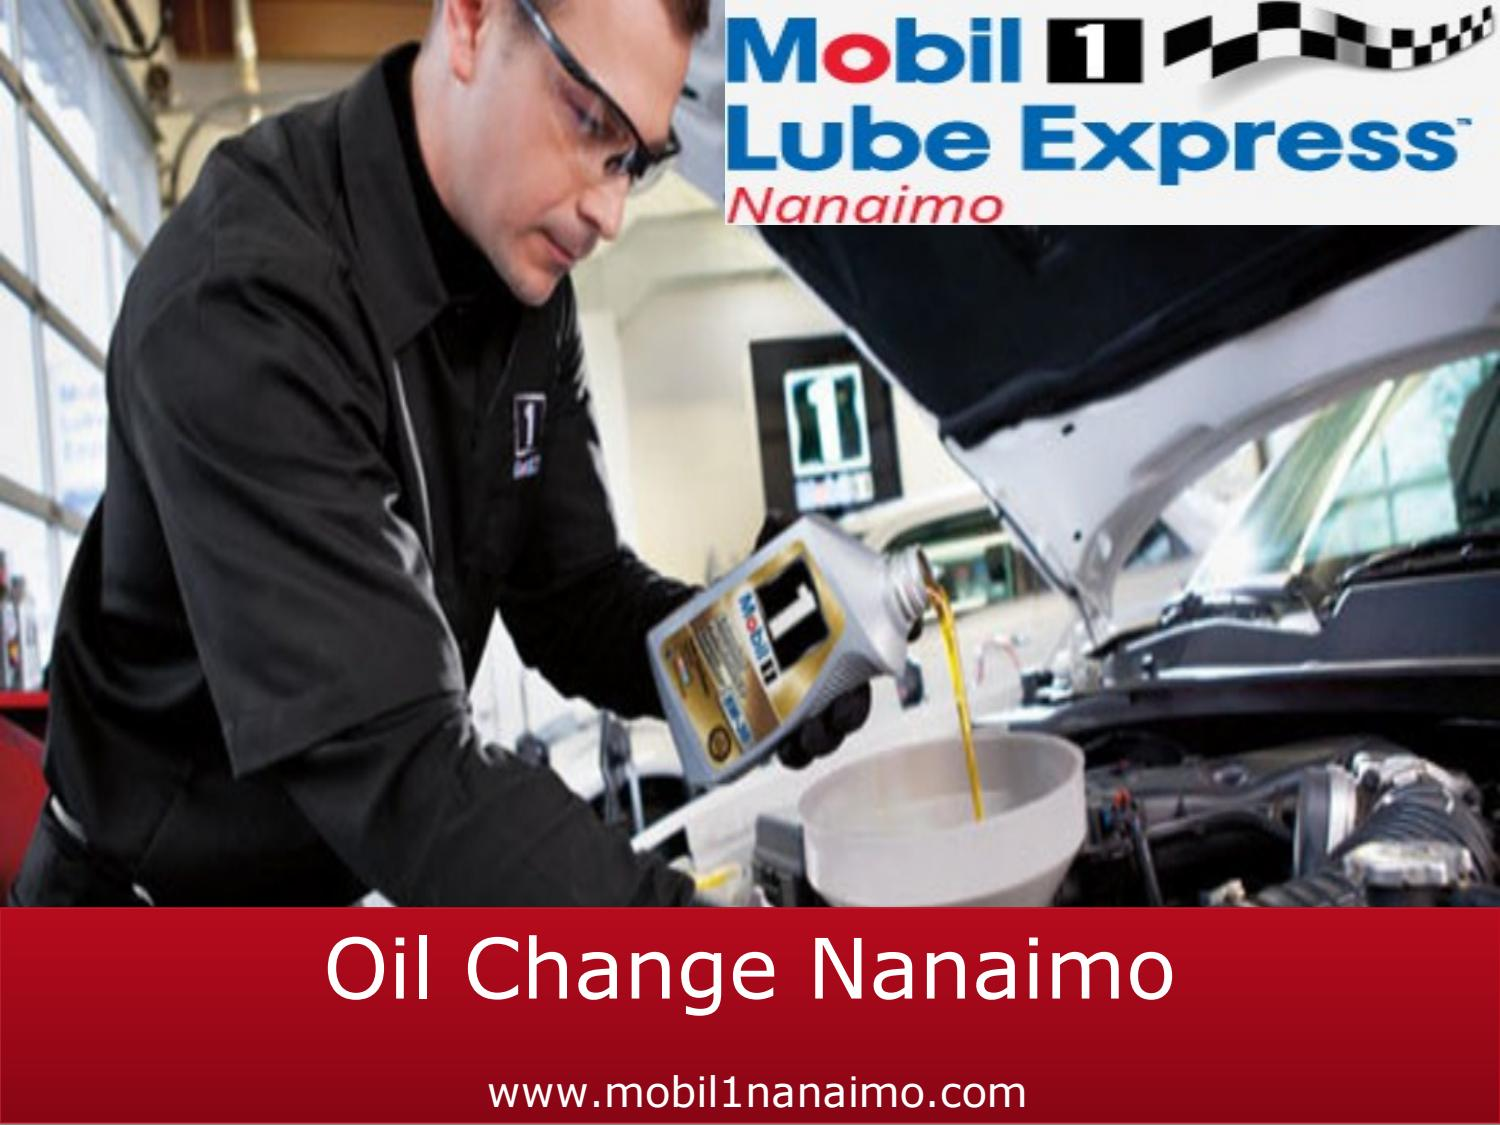 Mobil 1 Oil Change >> Oil Change Nanaimo By Mobil1 Lube Express Issuu